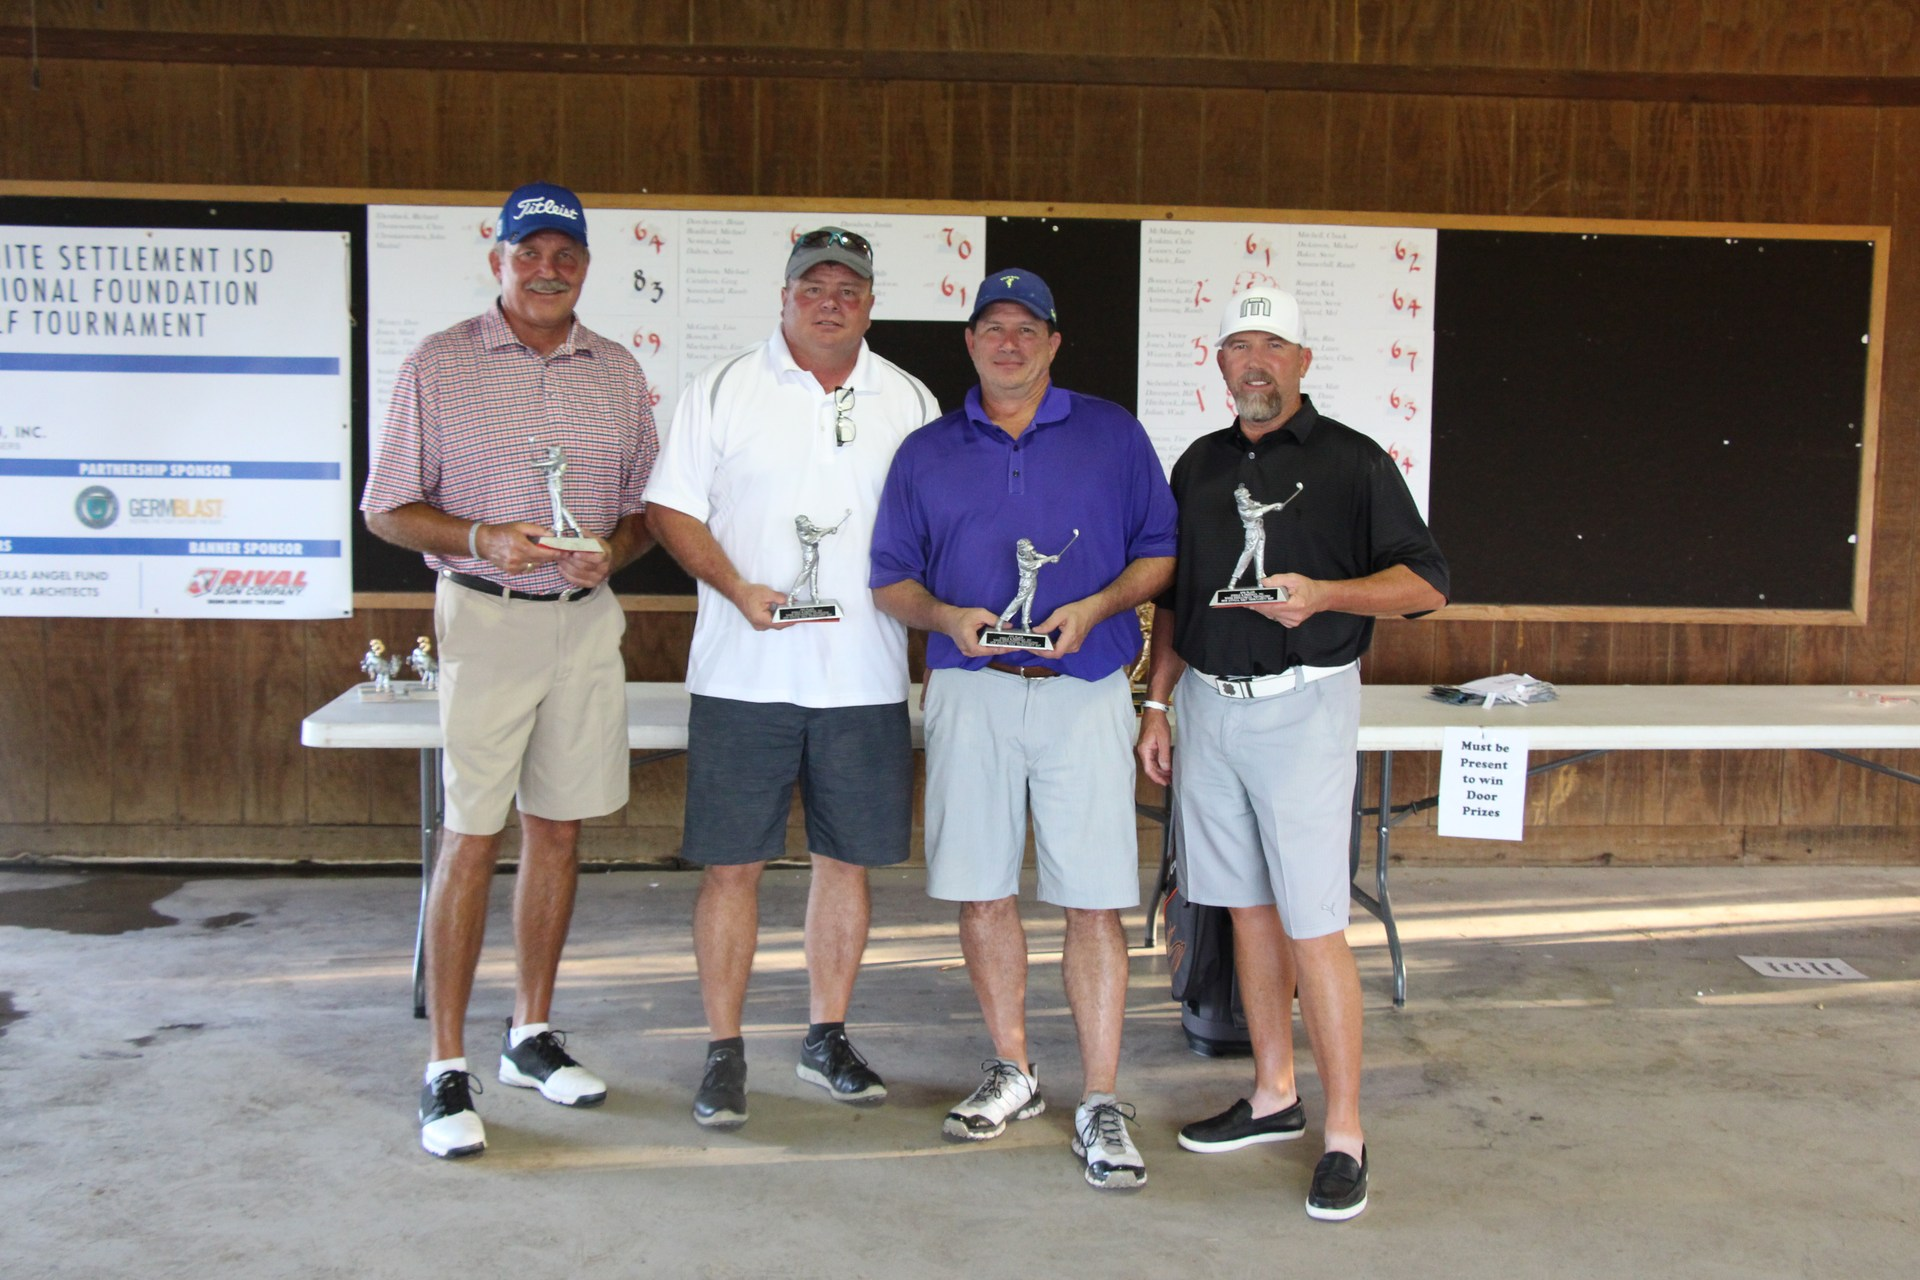 Second place team was Rick Armstrong, Garry Bonner, Sam Feronti and Greg Gabbert.